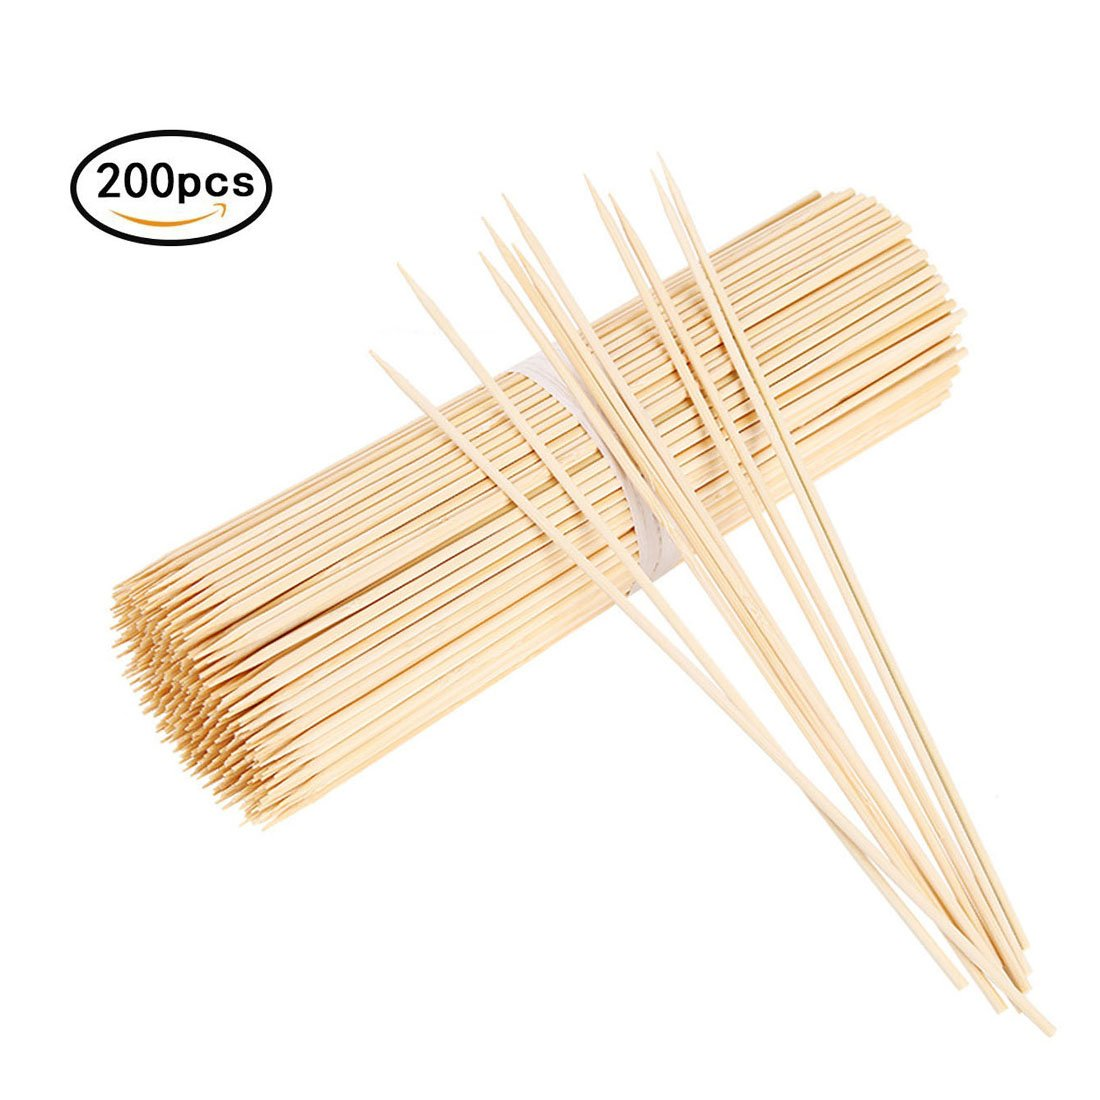 ZERMU Bamboo Skewers - 3mm Thick 12 Inch Long Heavy Duty Marshmallow Roasting Sticks, Roaster Barbecue Sticks, Hot Dog Smores Skewers for Camping, Party, Kebab (200 Pcs)